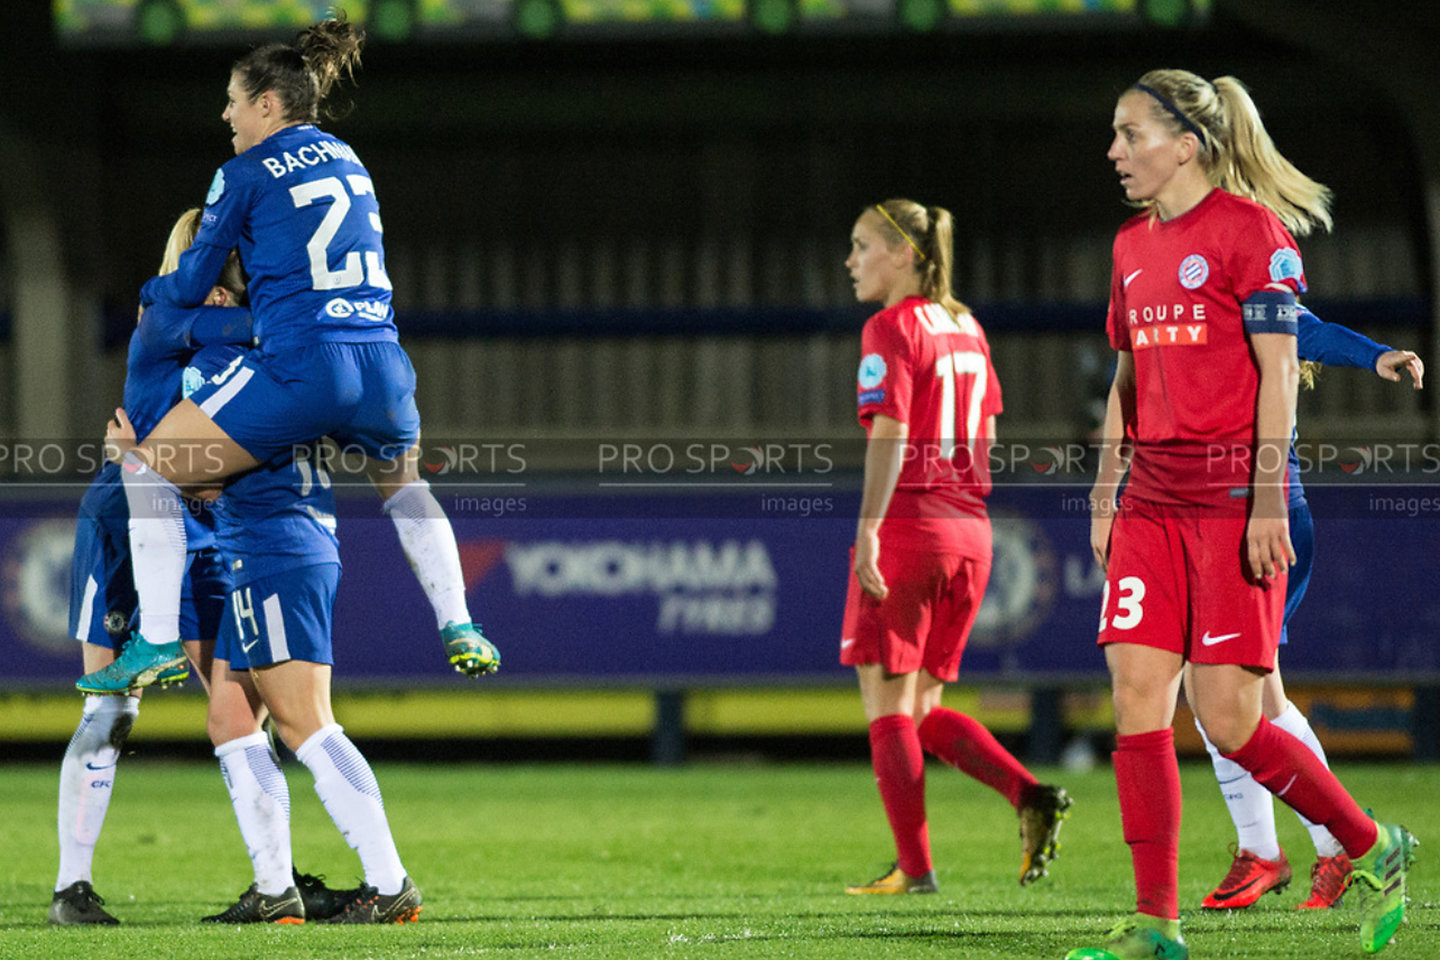 Chelsea Ladies Vs Montpellier